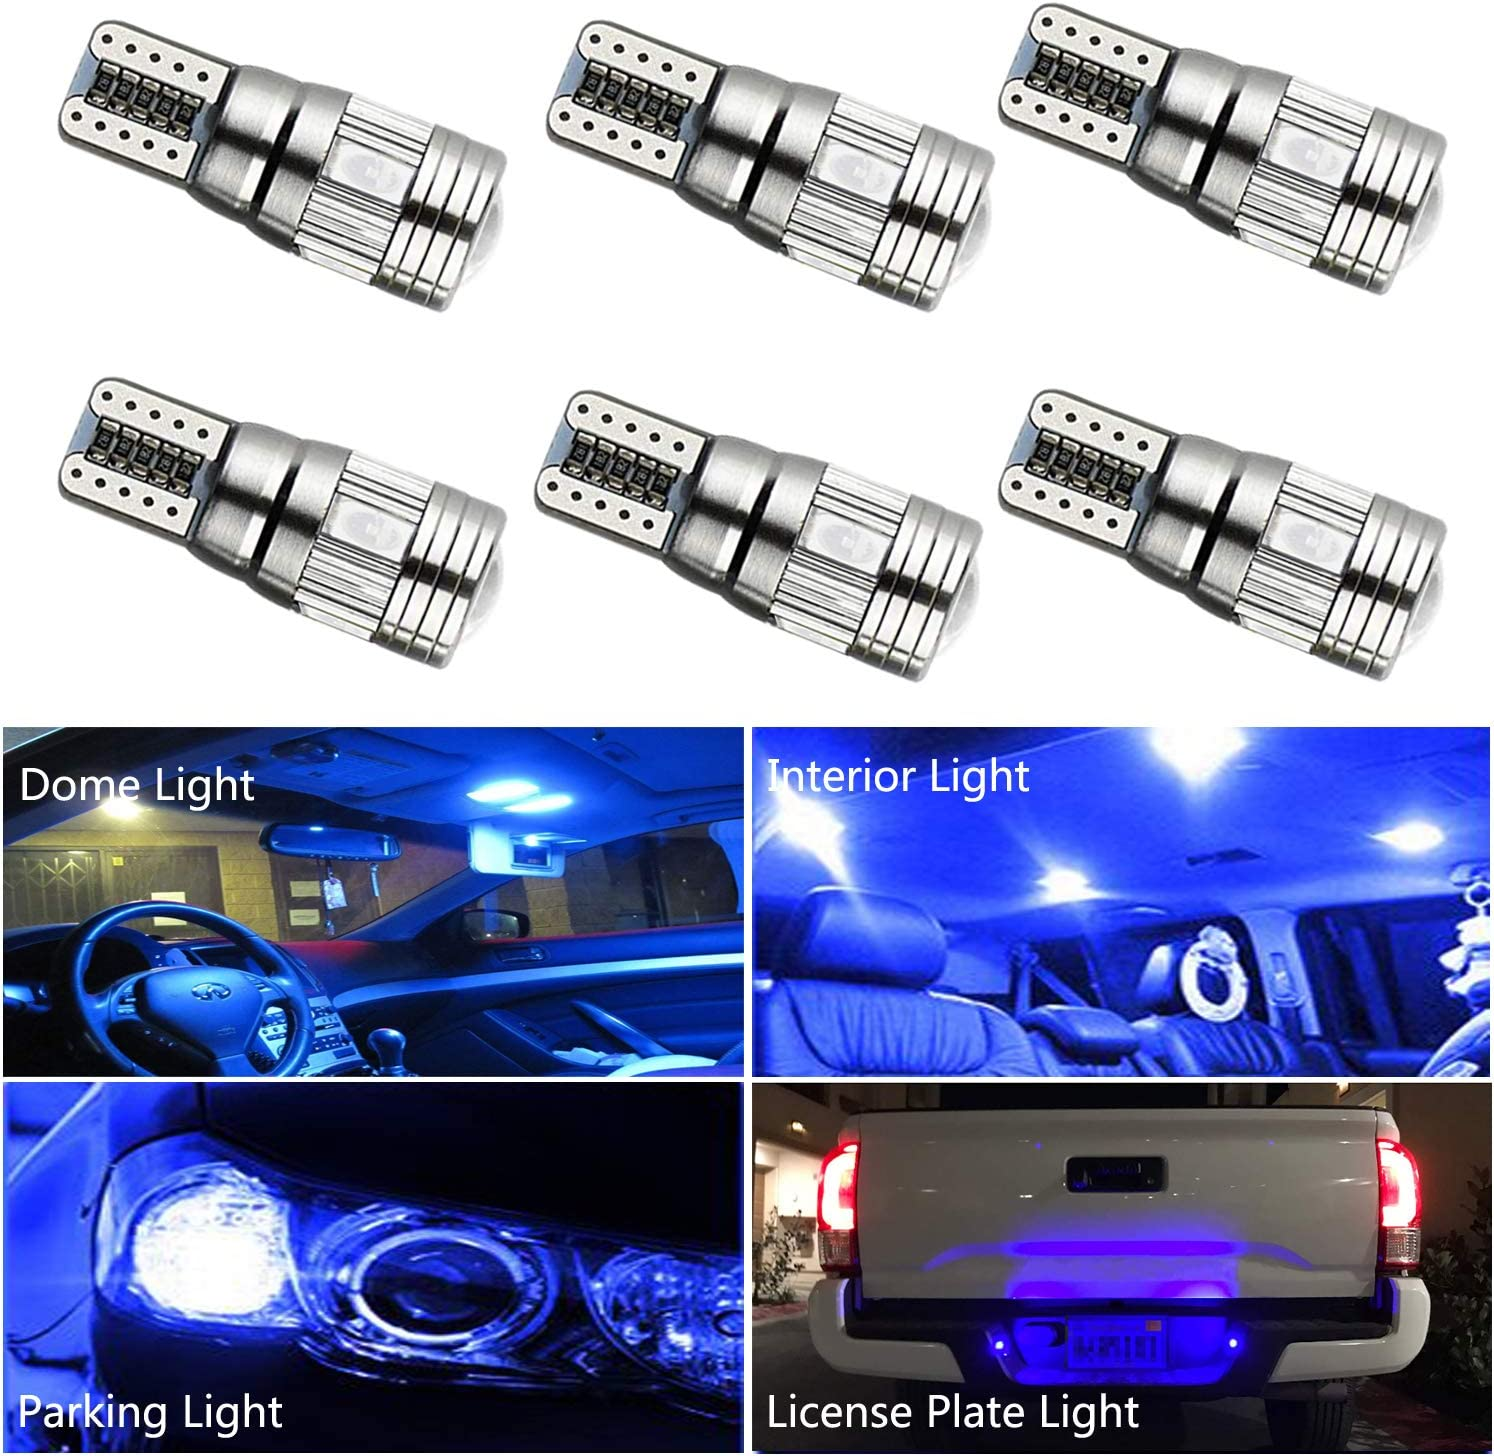 HOCOLO 6x T10 198 194 168 912 921 W5W 2825 6-SMD Canbus Error Free Blue Color High Power LED Bulb For Interior Dome/Map/License Plate/Parking/Door/Trunk Lights (6pcs T10 6-SMD Canbus Error Free, Blue)